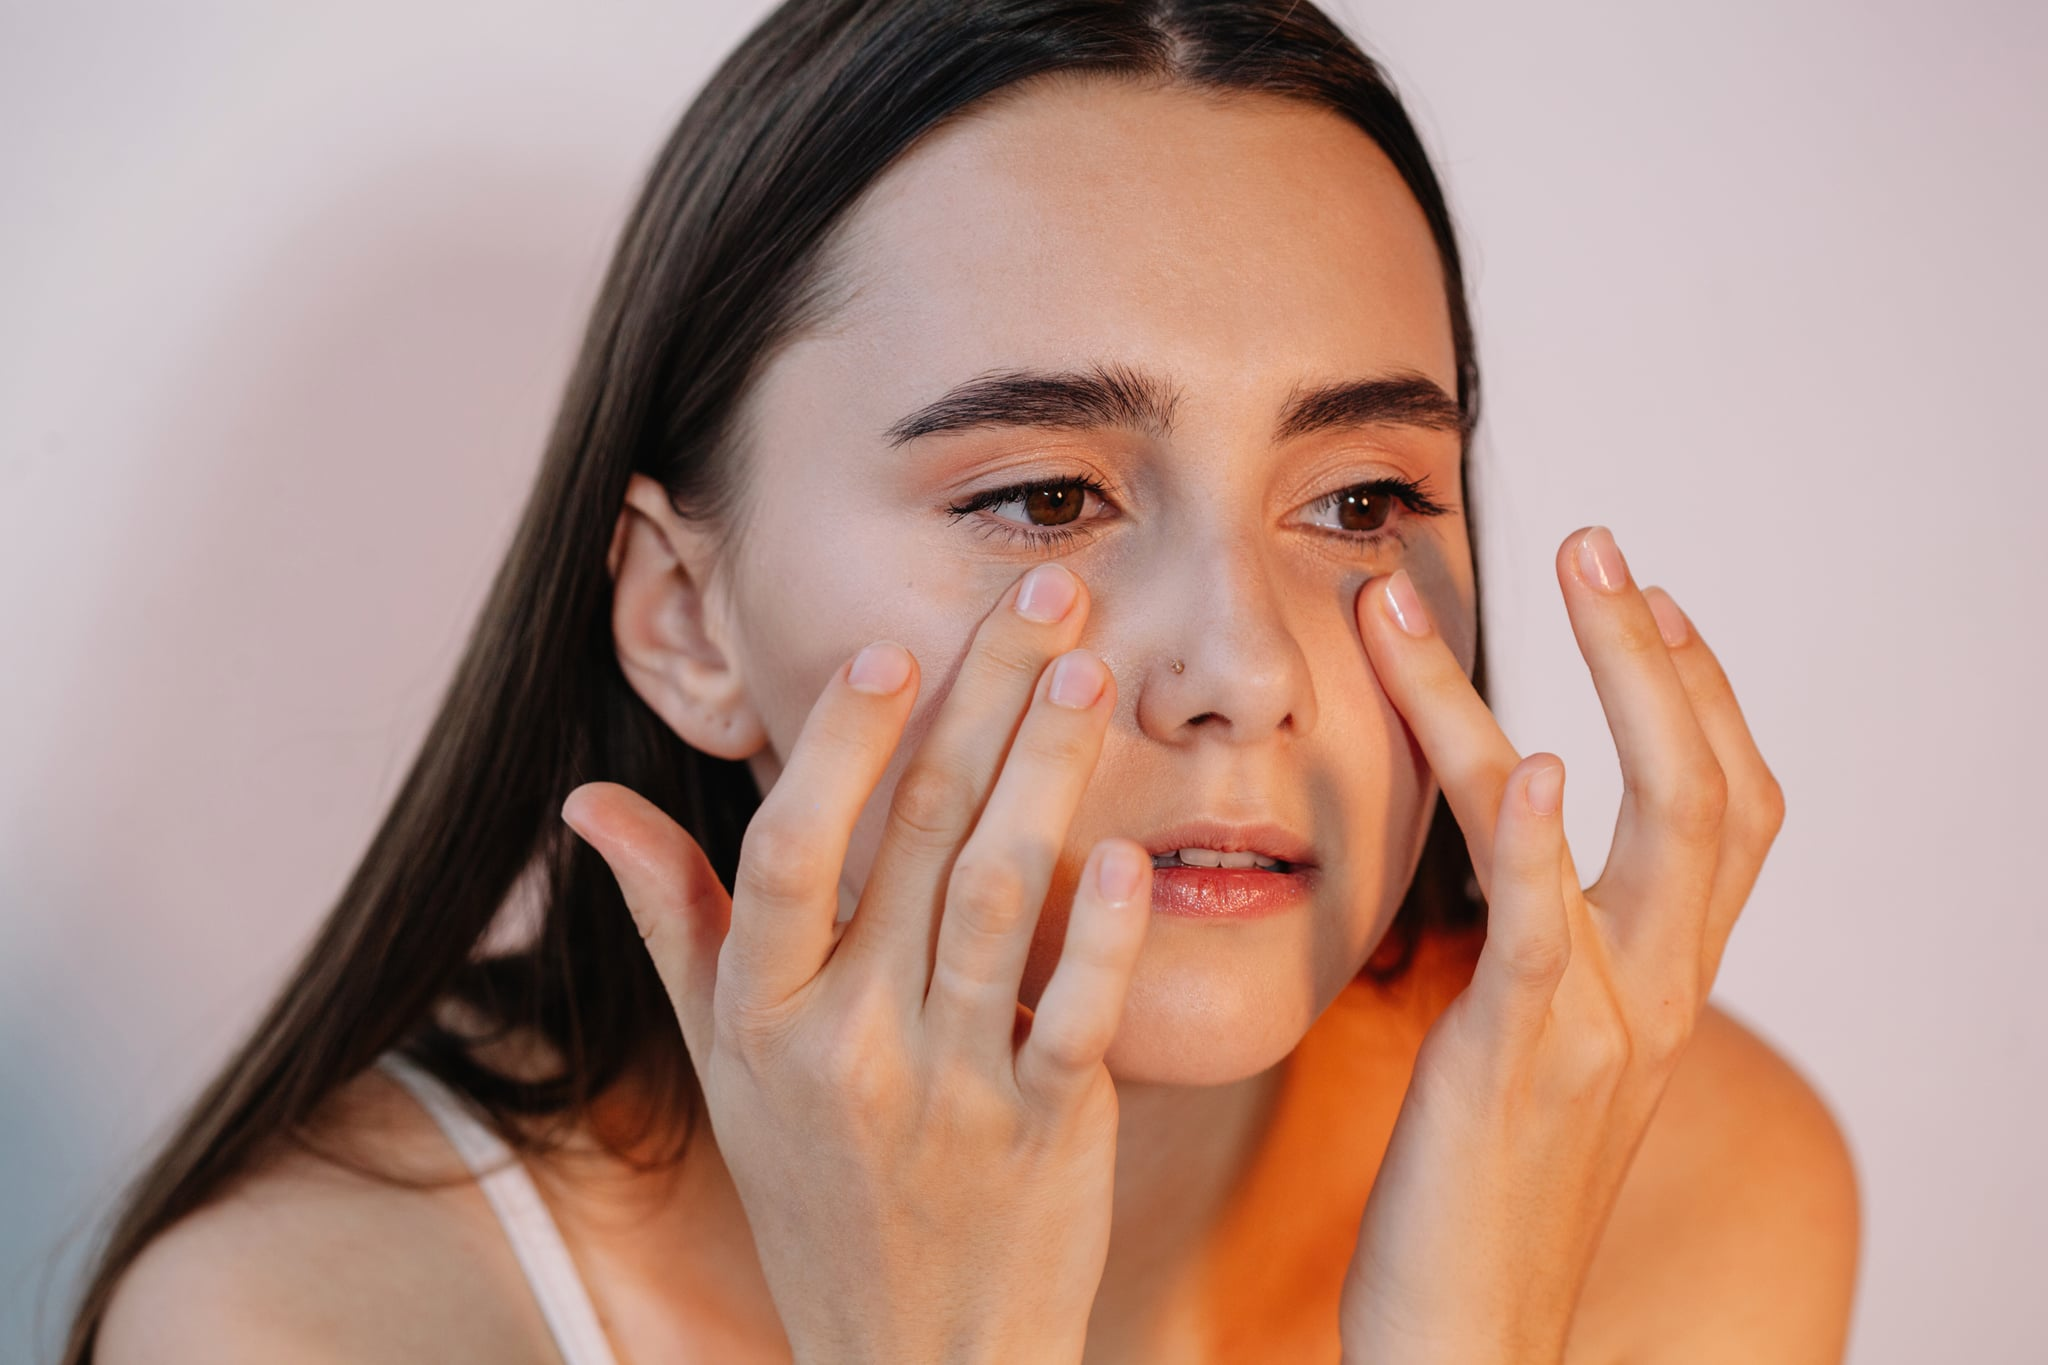 How to Heal Dry Skin on Your Eyelids, According to Experts 2